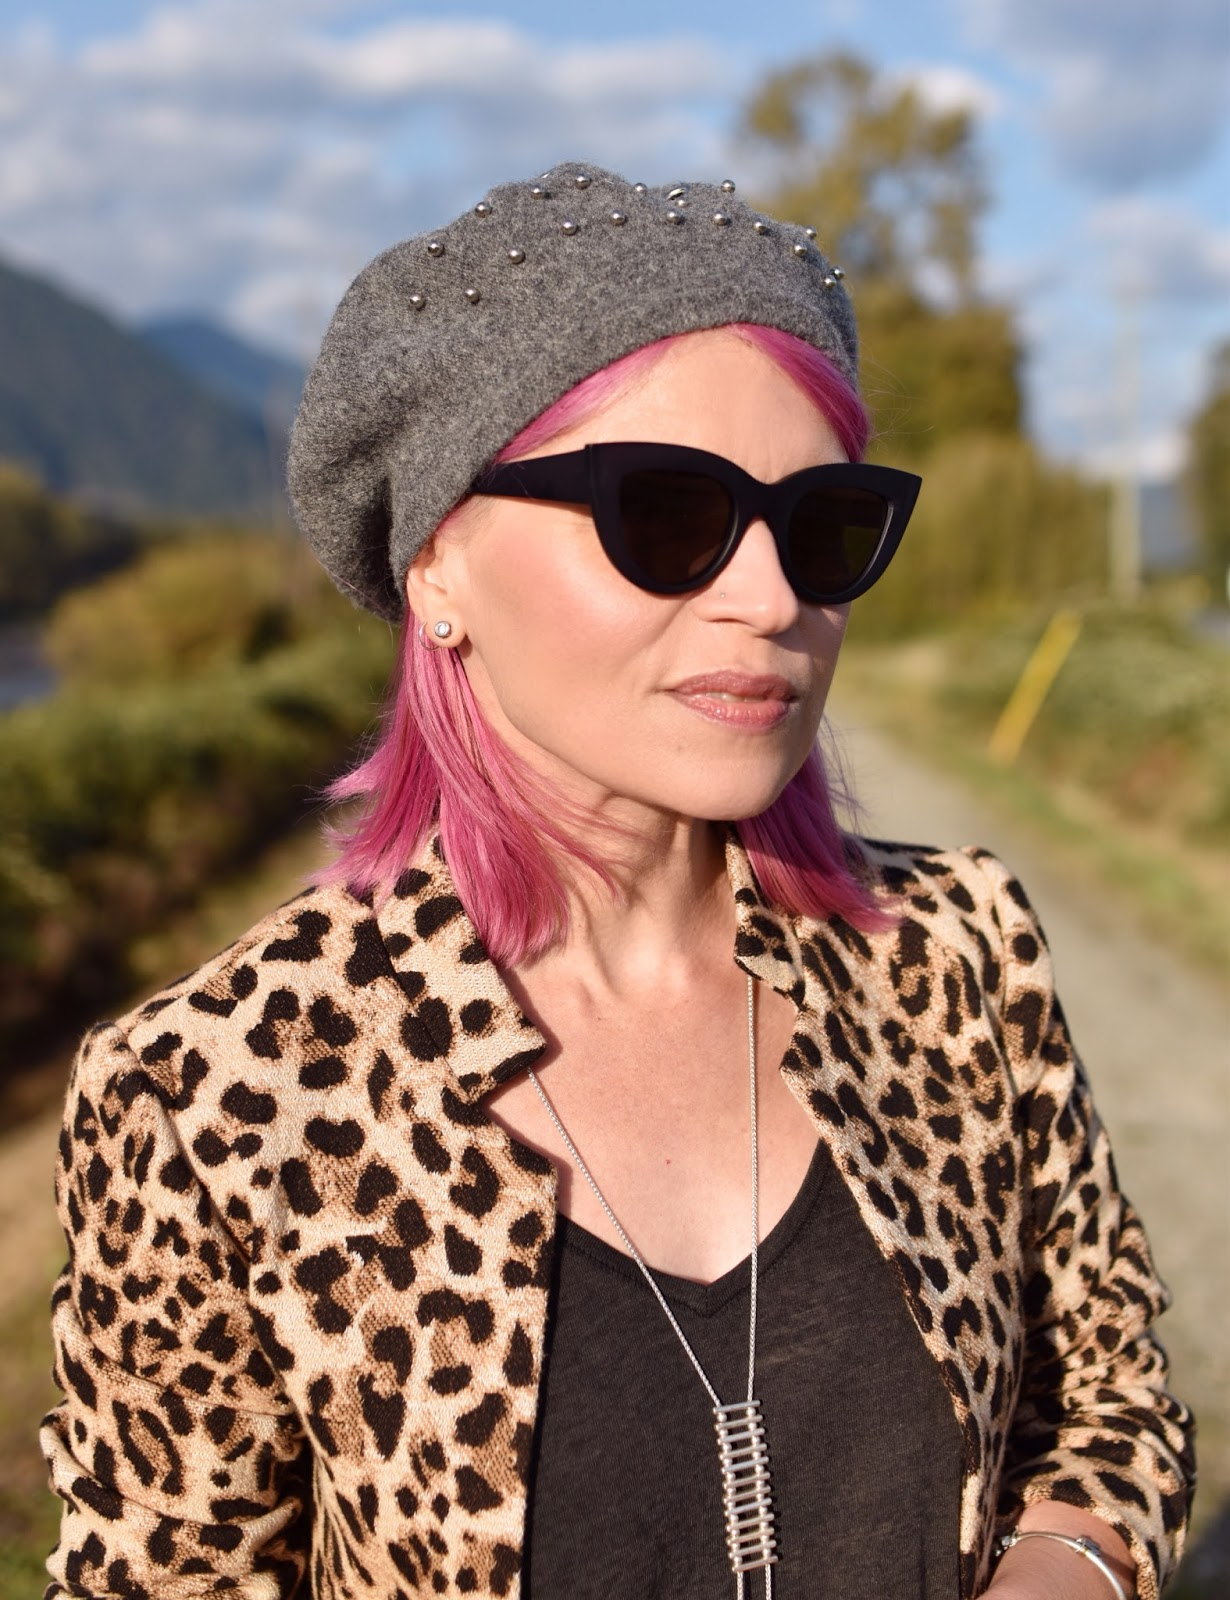 Monika Faulkner outfit inspiration - leopard-patterned coat, beaded beret, cat-eye sunglasses, pink hair